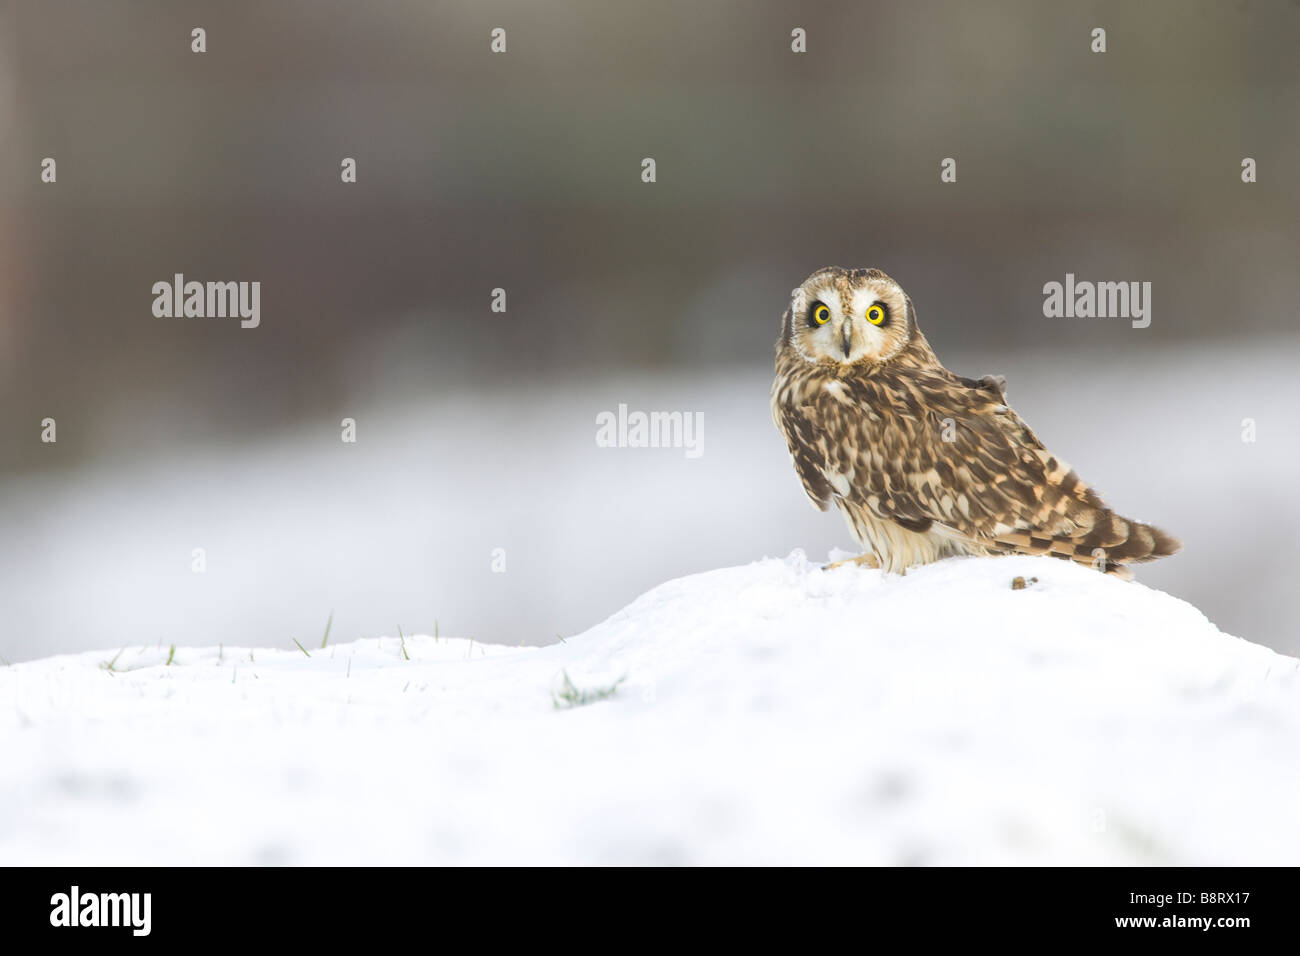 Short Eared Owl in the snow - Stock Image